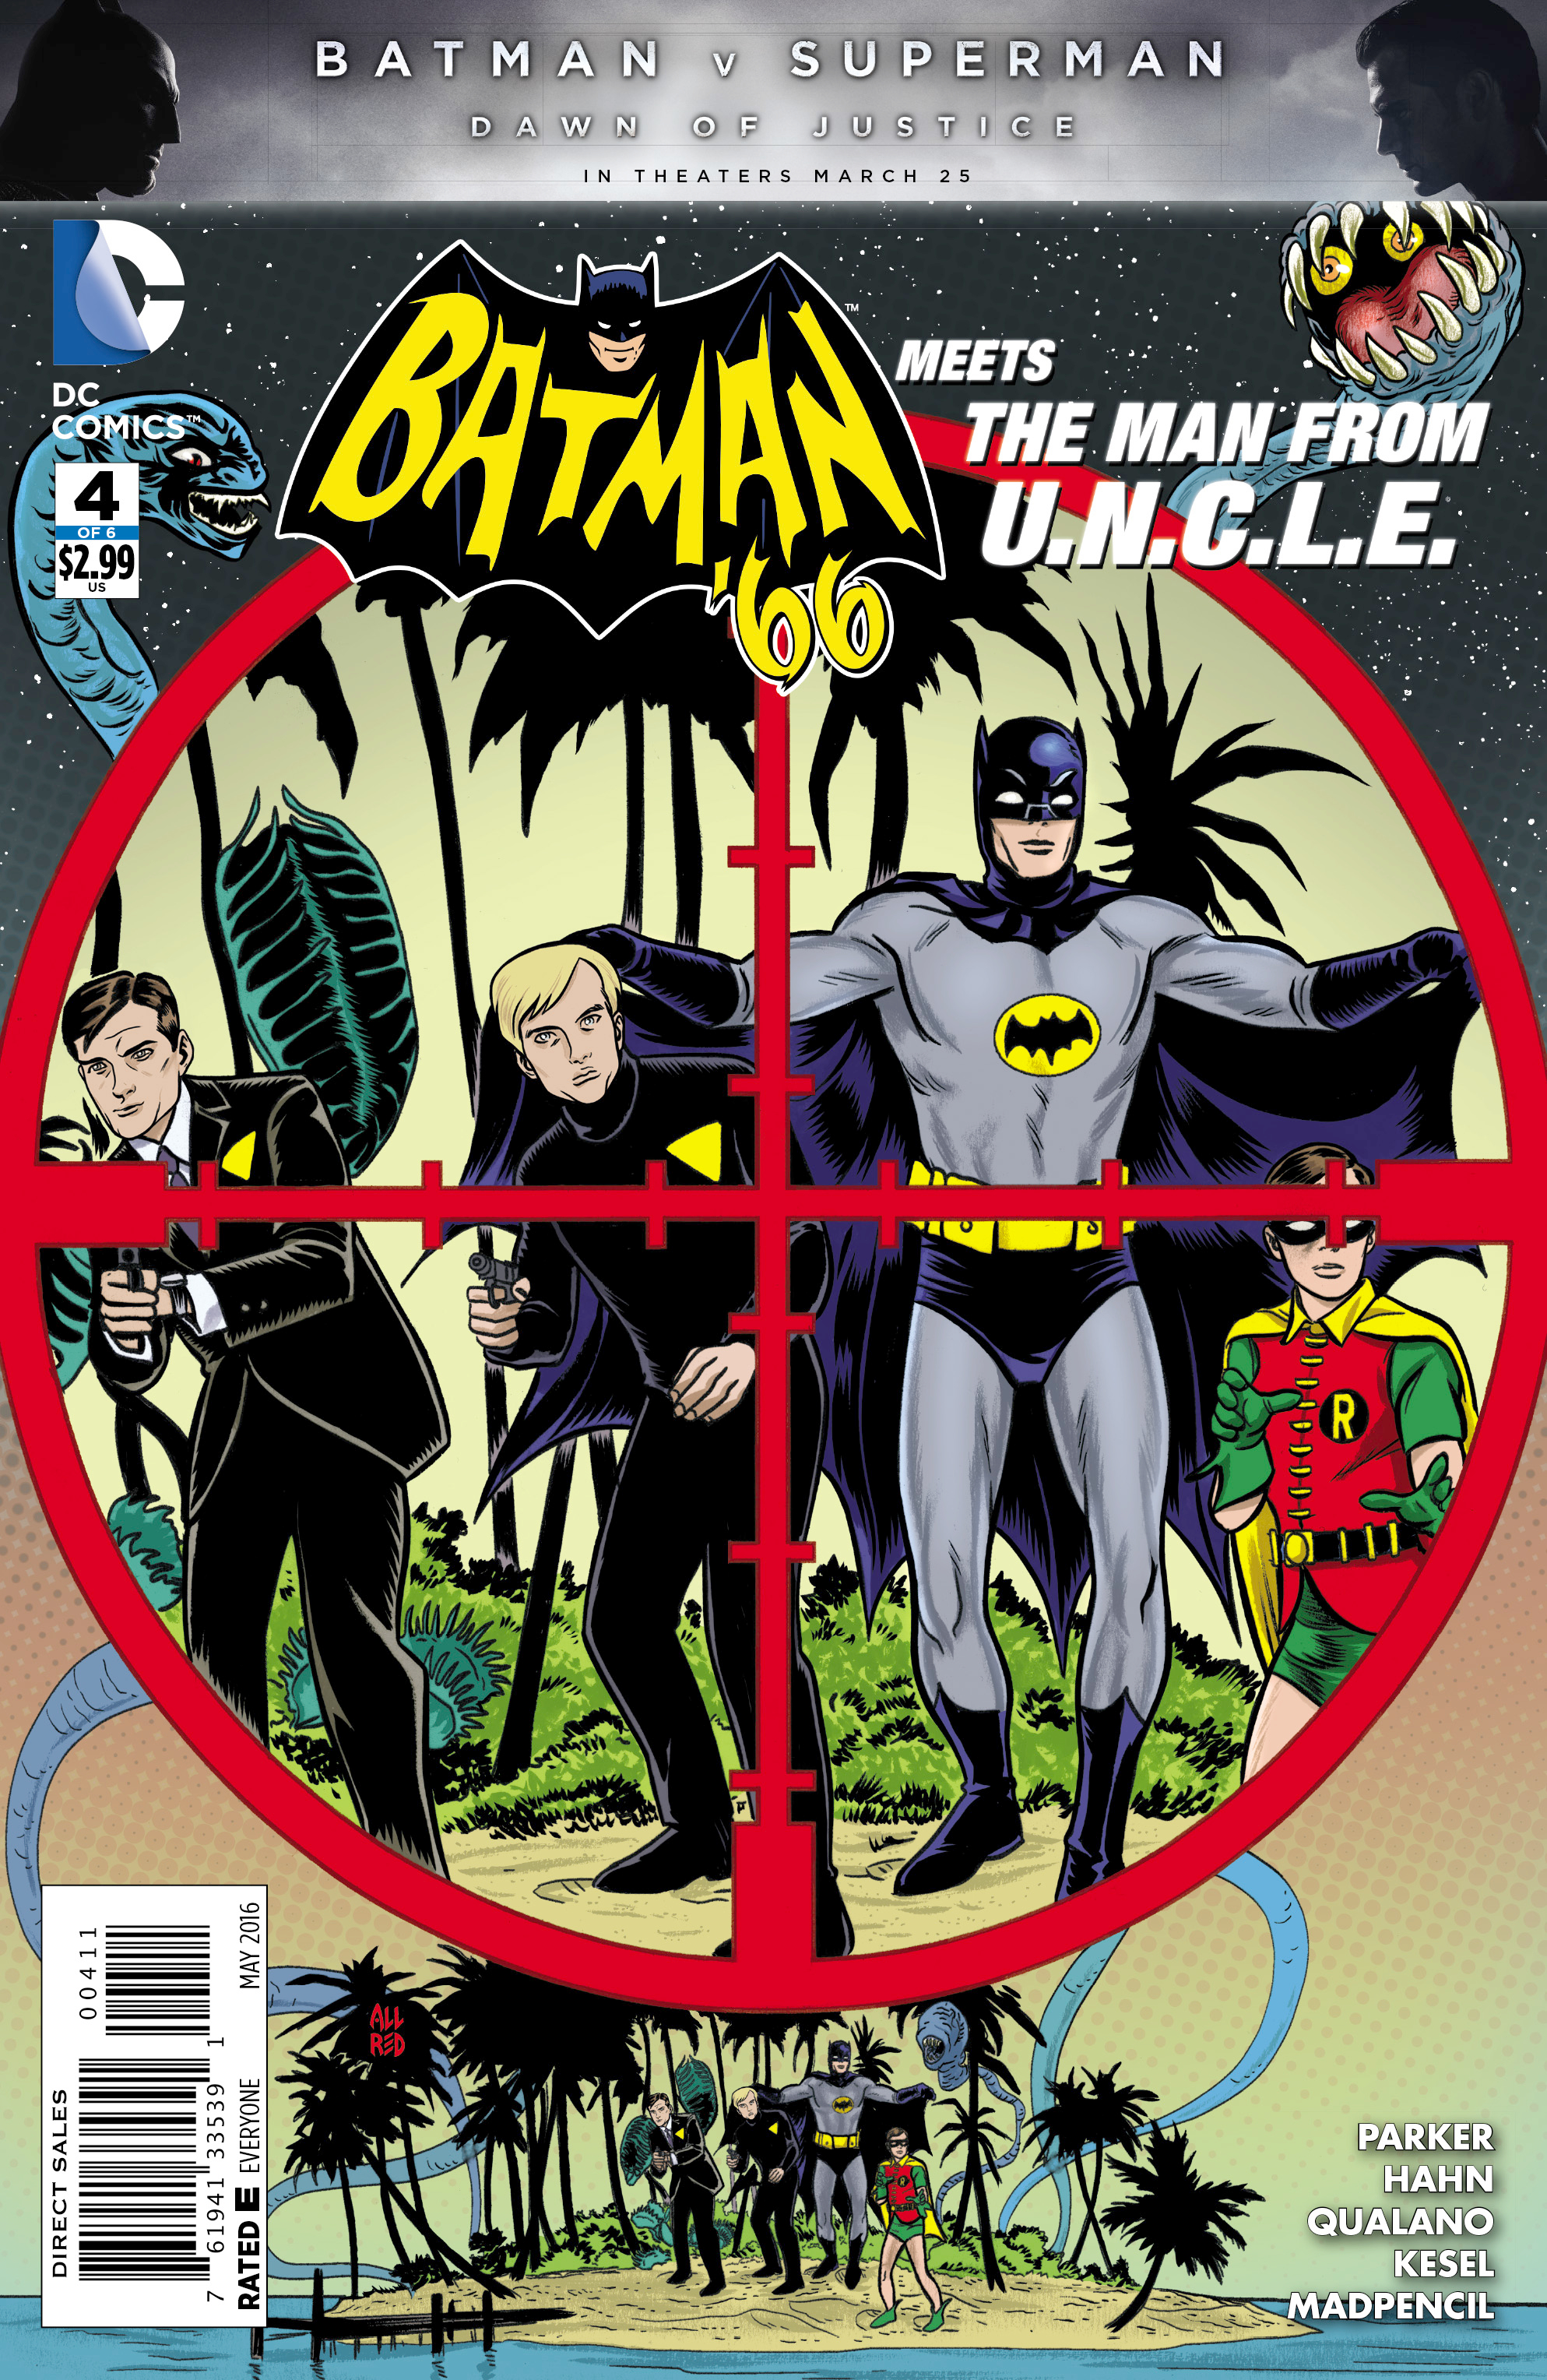 BATMAN 66 MEETS THE MAN FROM UNCLE #4